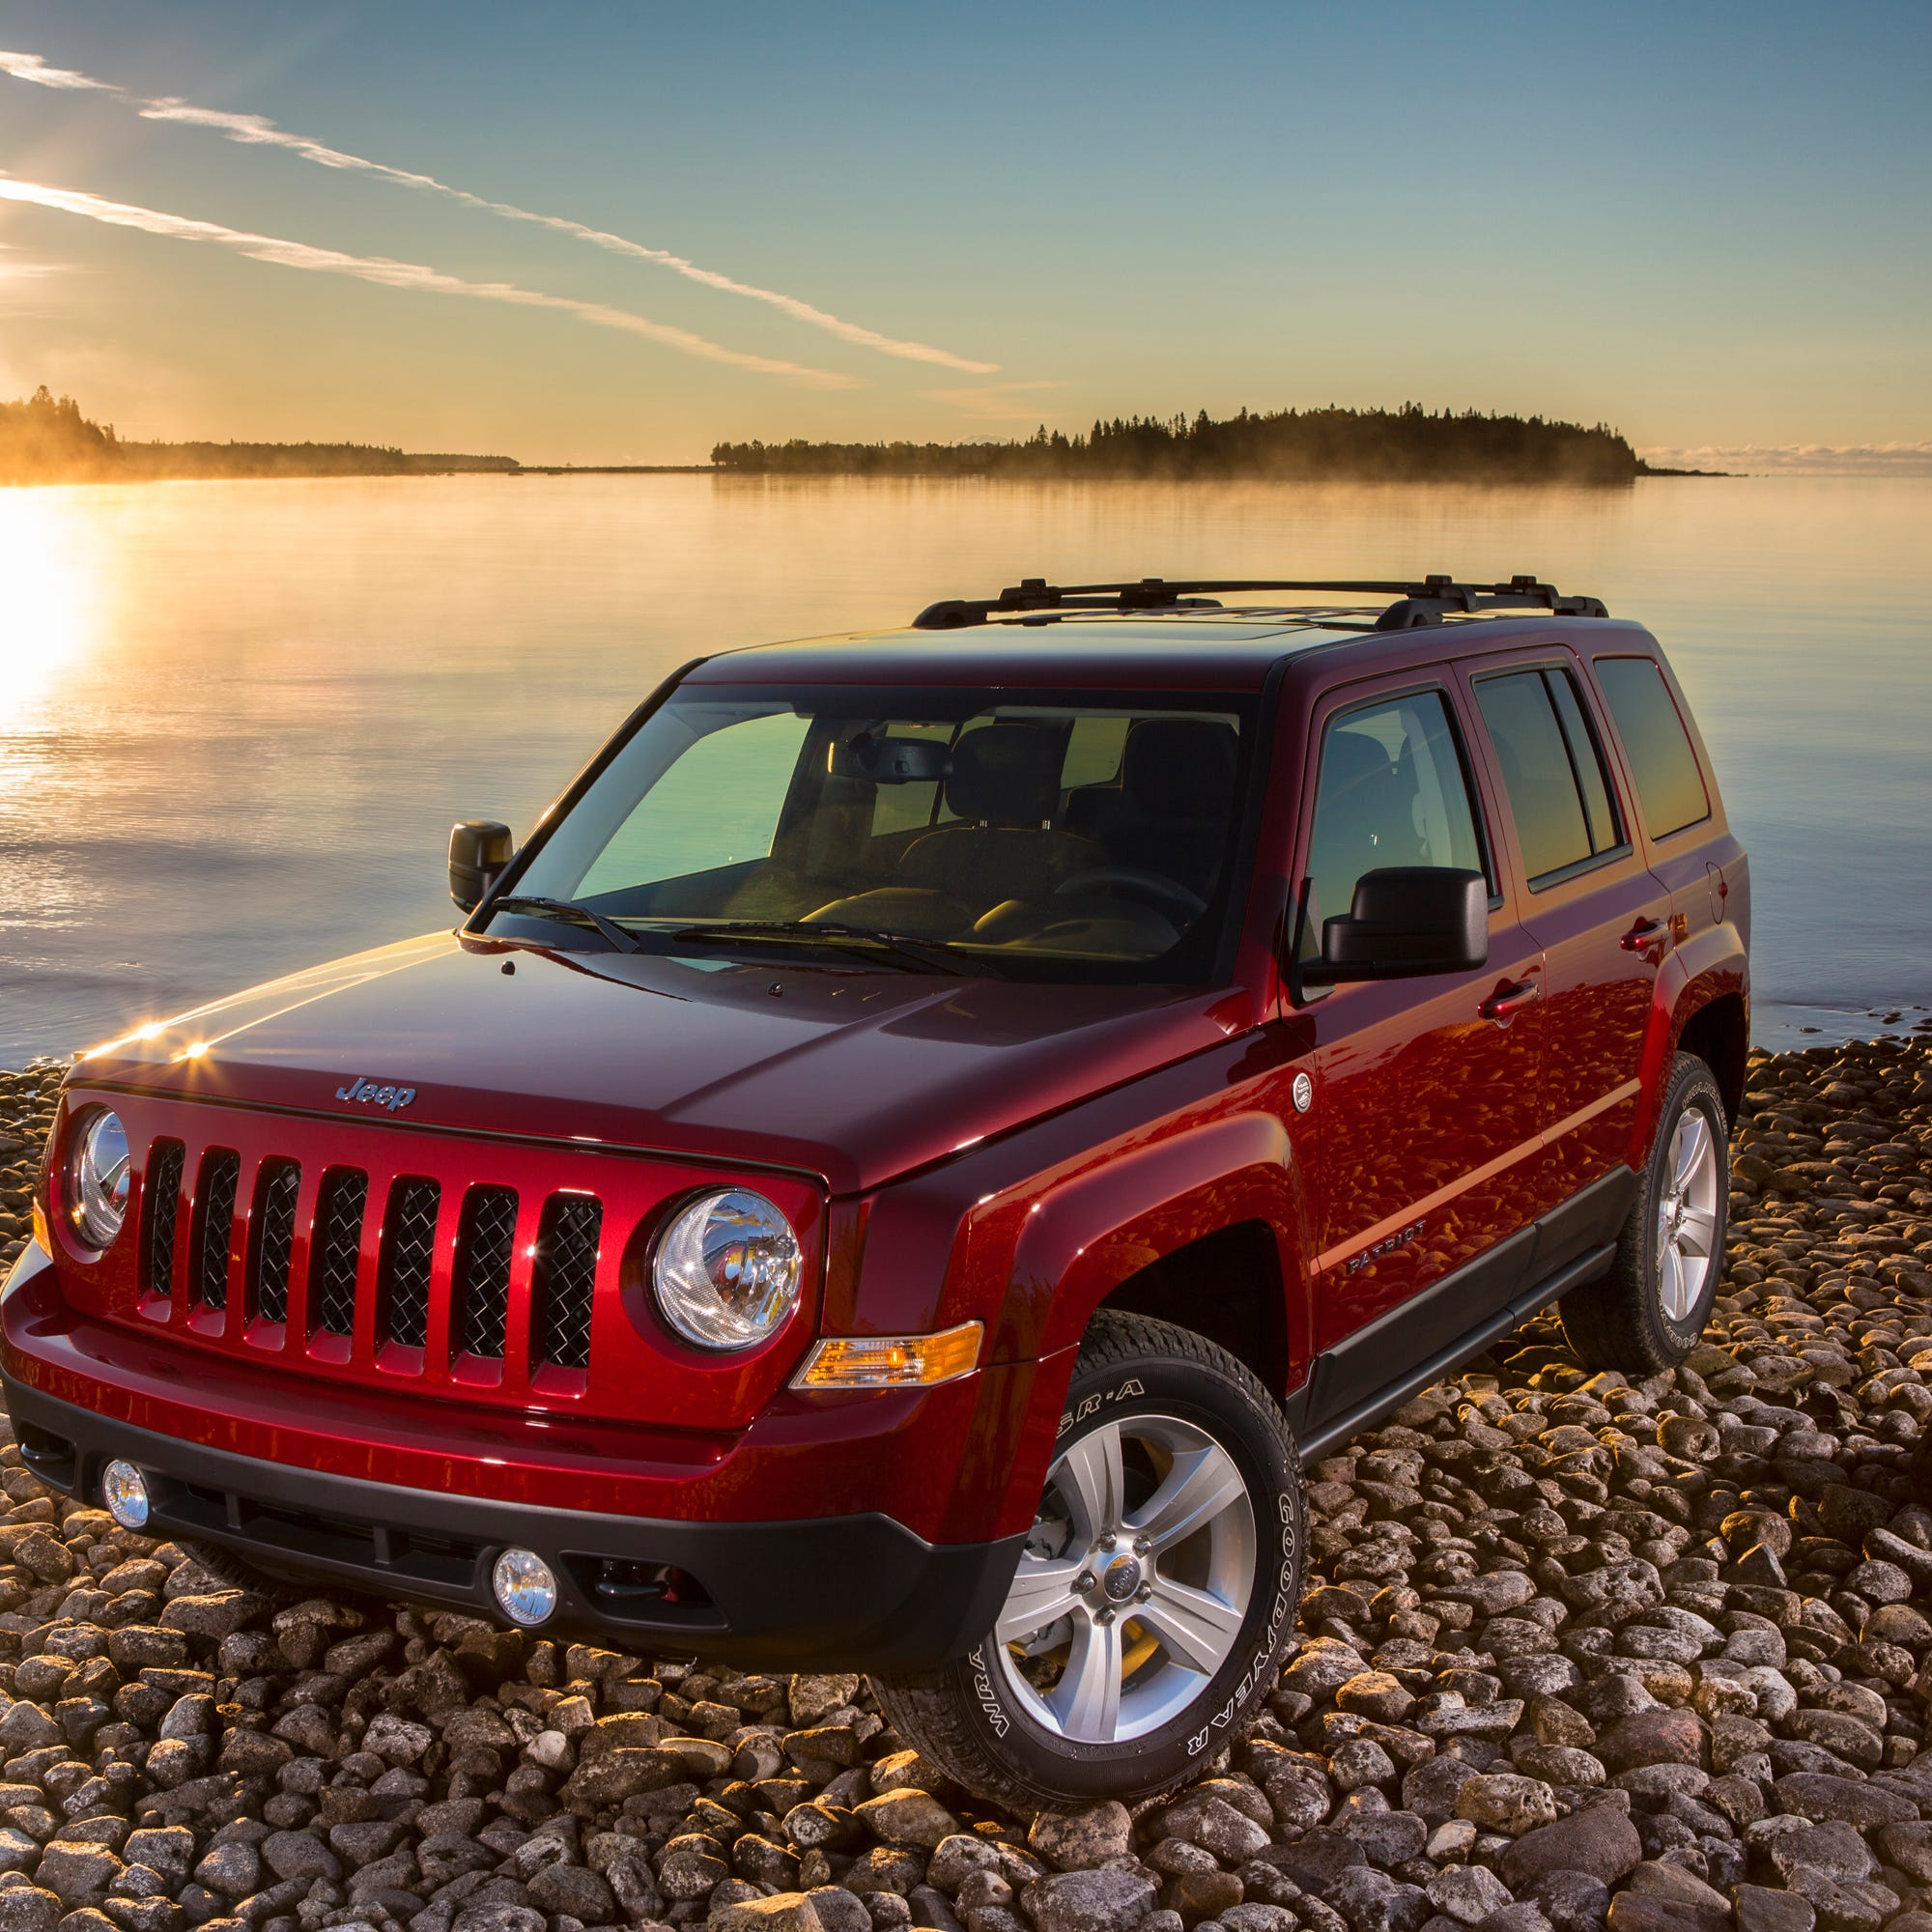 The 2014 Jeep Patriot is under investigation for potentially faulty airbags.